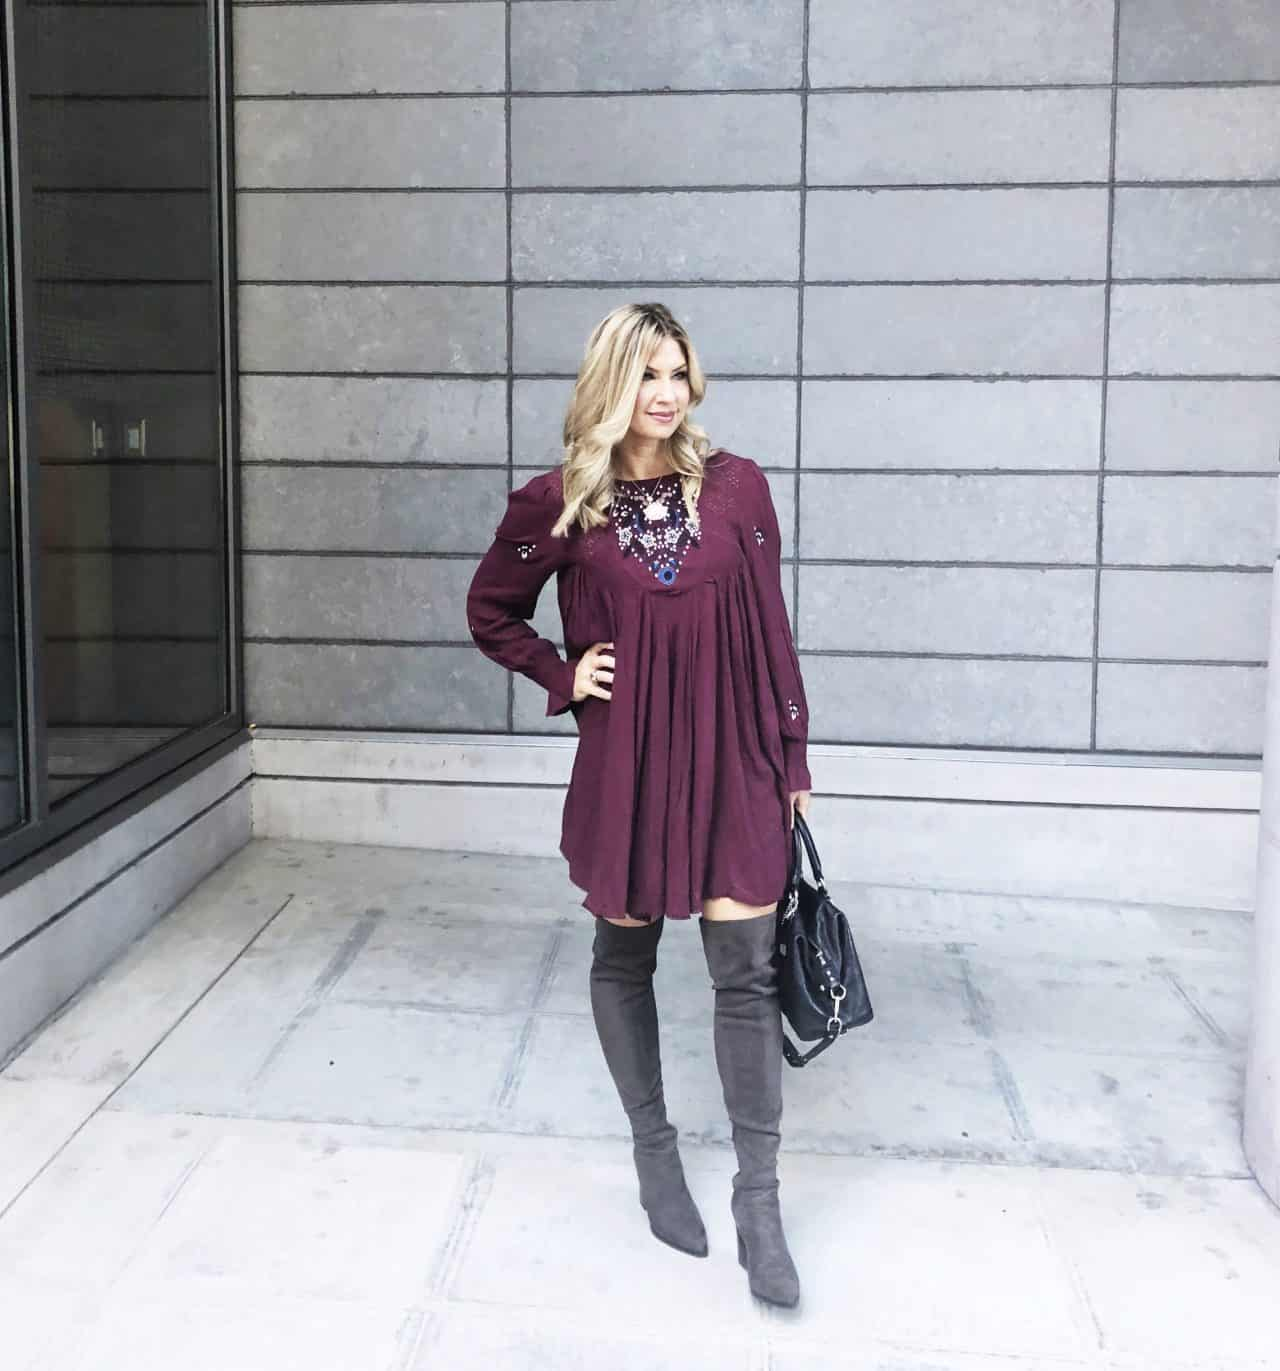 Free People Embroidered Minidress, knee high boots, flowy dress, grey boots, grey knee high boots, free people, free people clothes, free people dress,